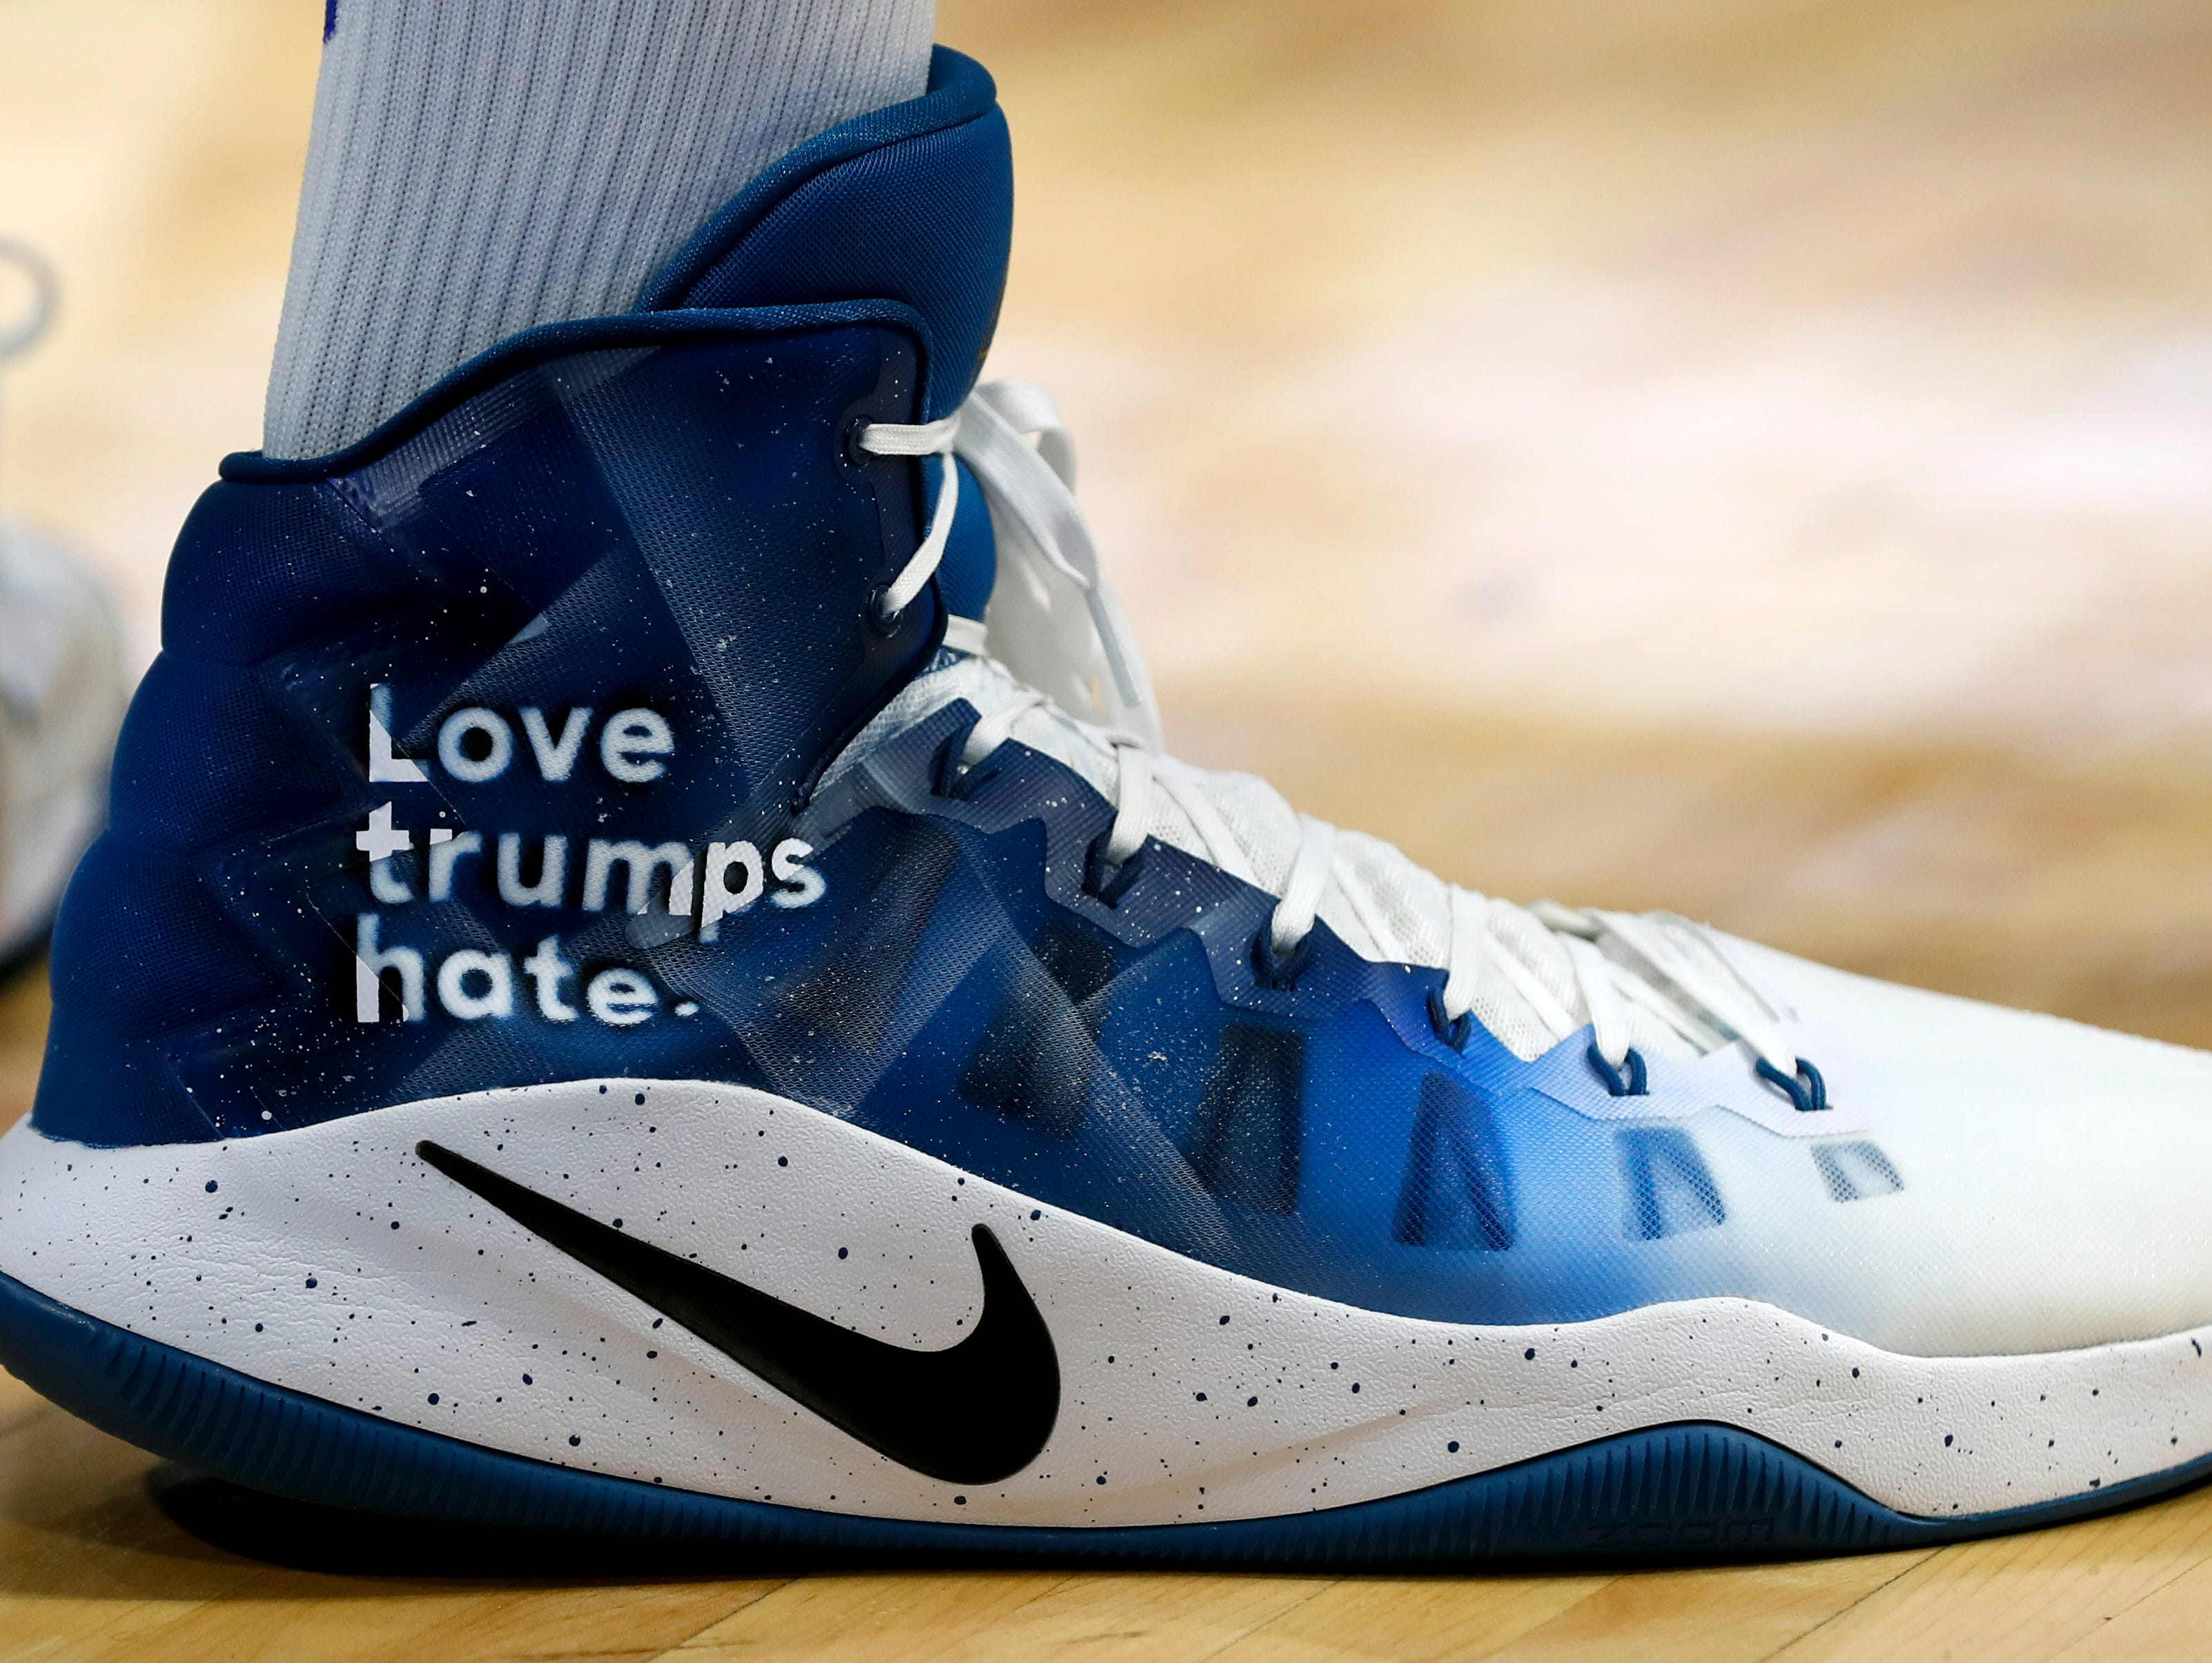 Karl-Anthony Town wore Love trumps hate on his shoes during Kentucky's Alumni game. Aug. 25, 2017